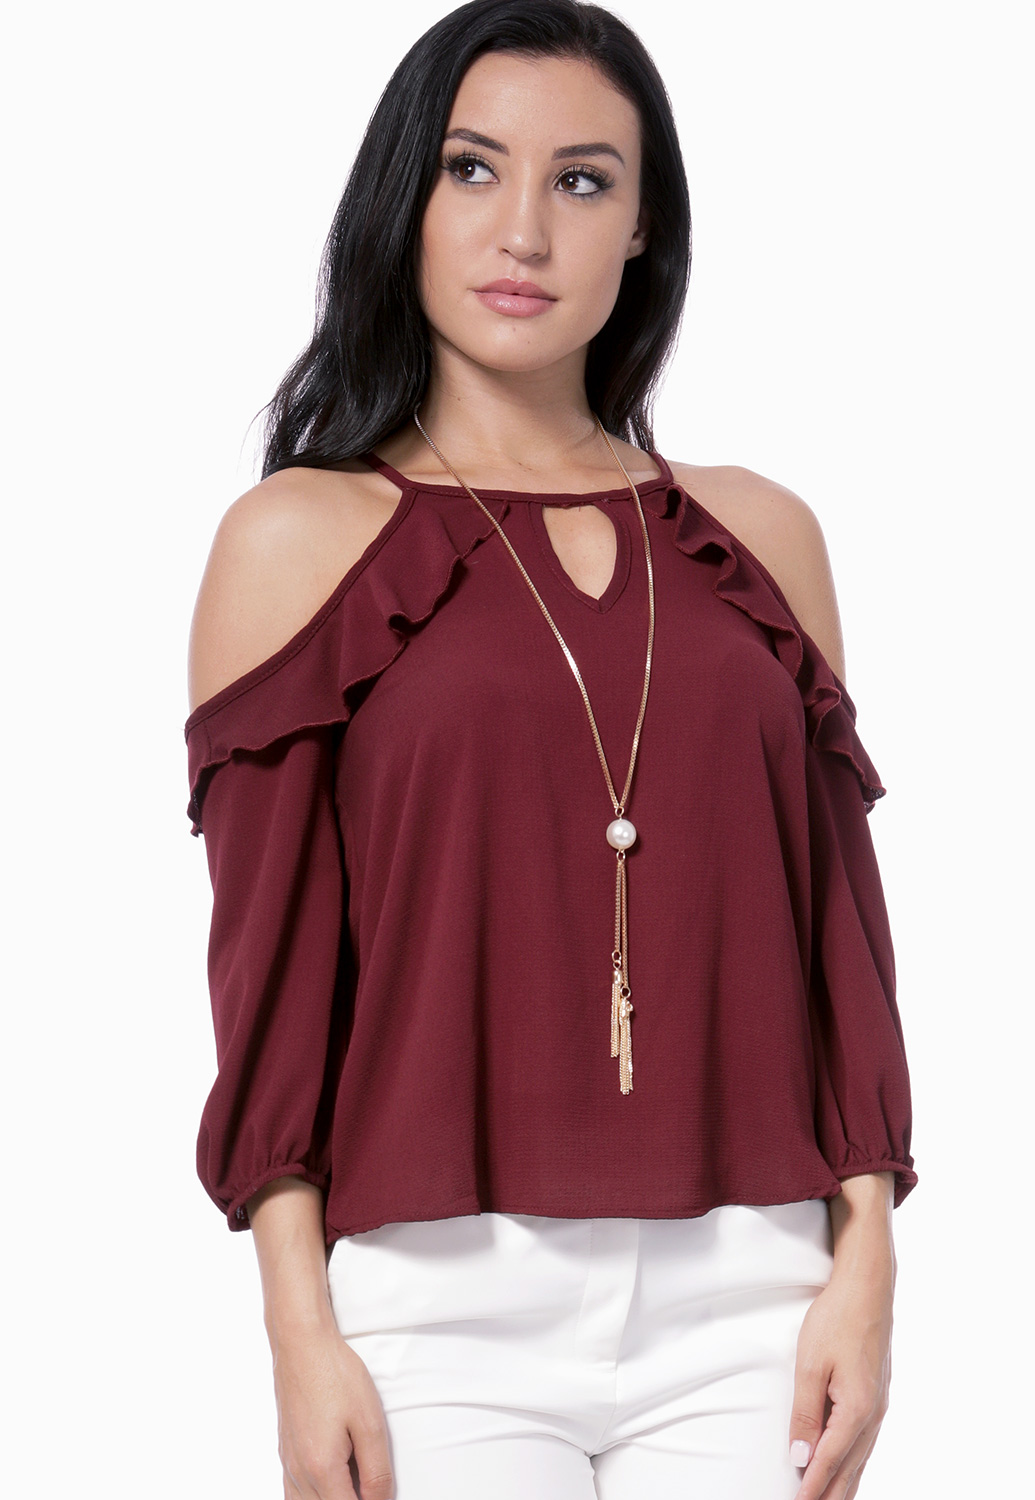 Flare Trim Dressy Top W/Necklace